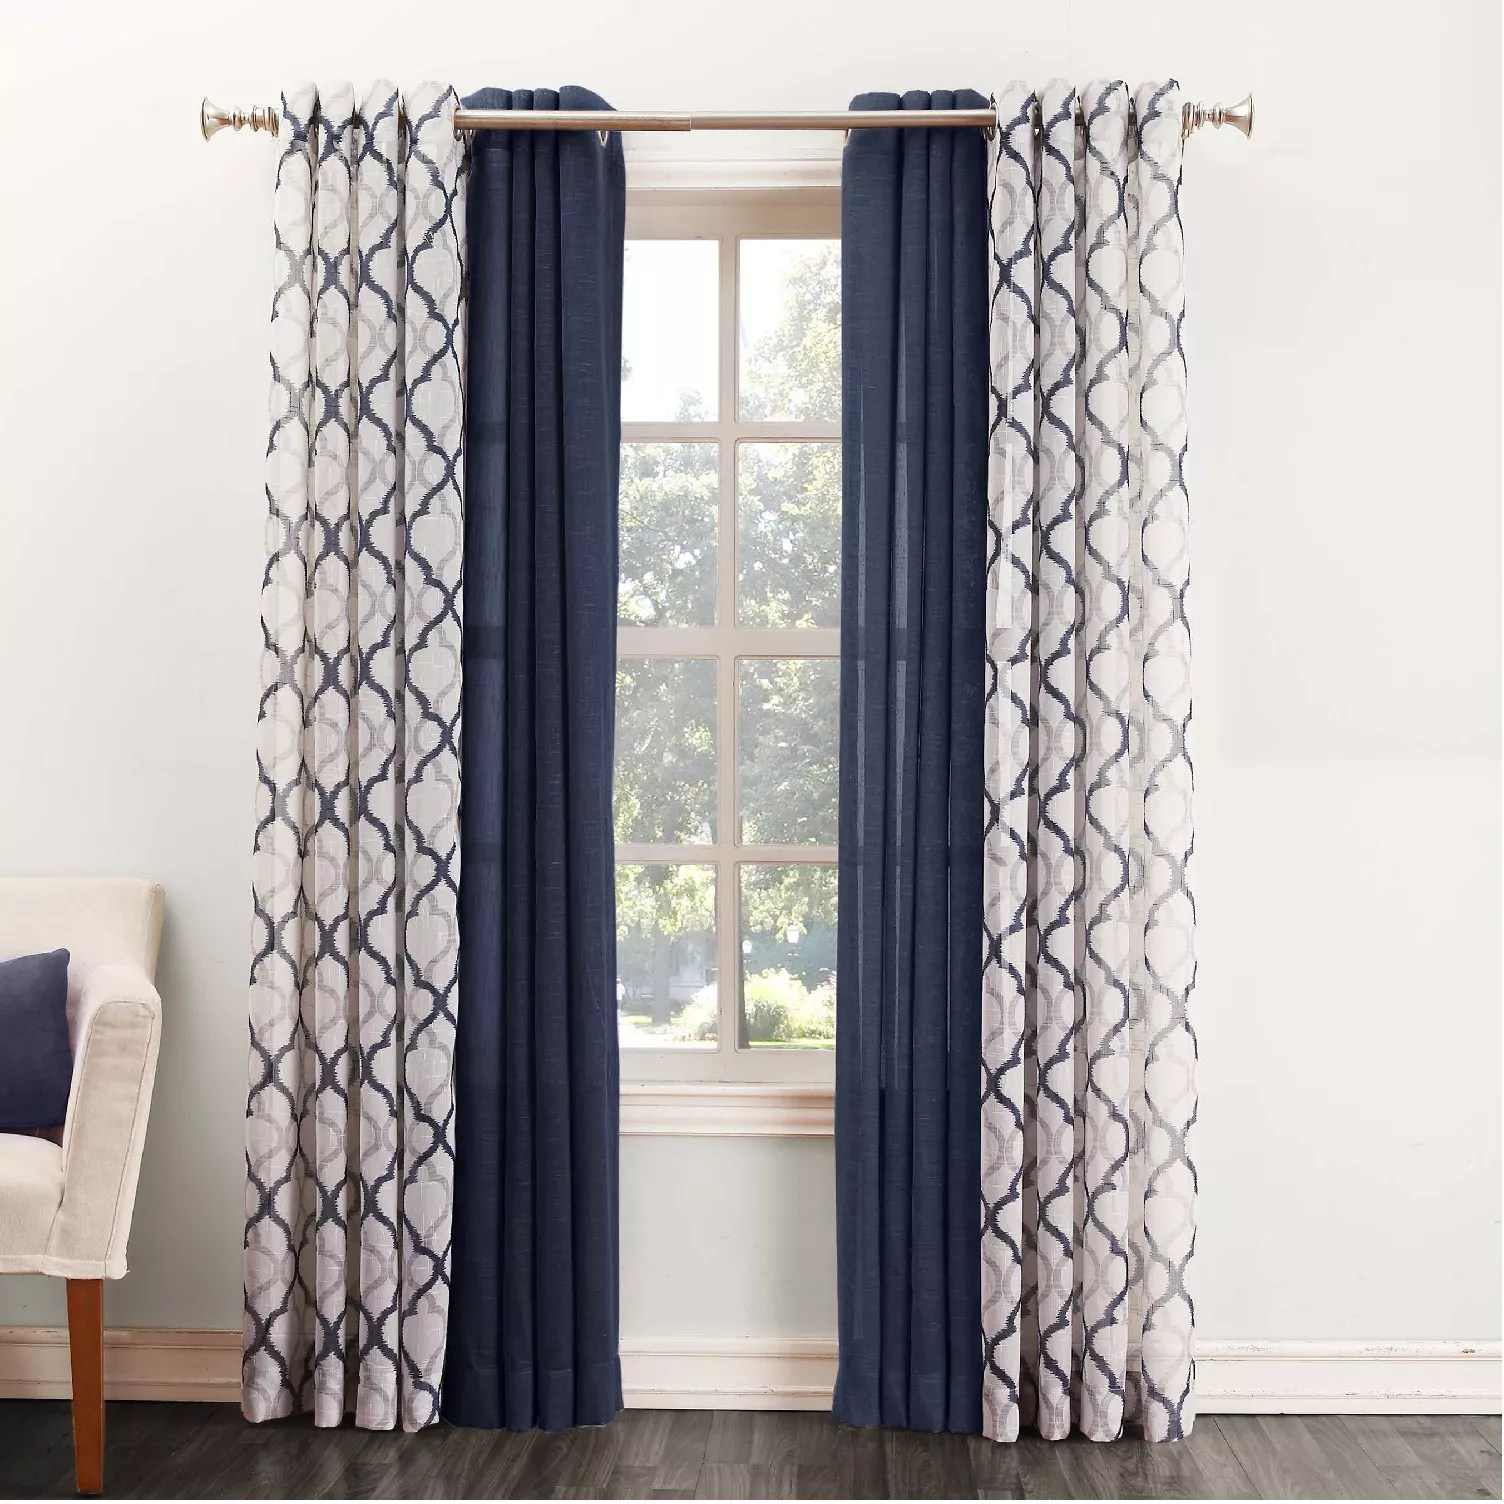 Curtains & Drapes Window Treatments Home Decor Kohl's